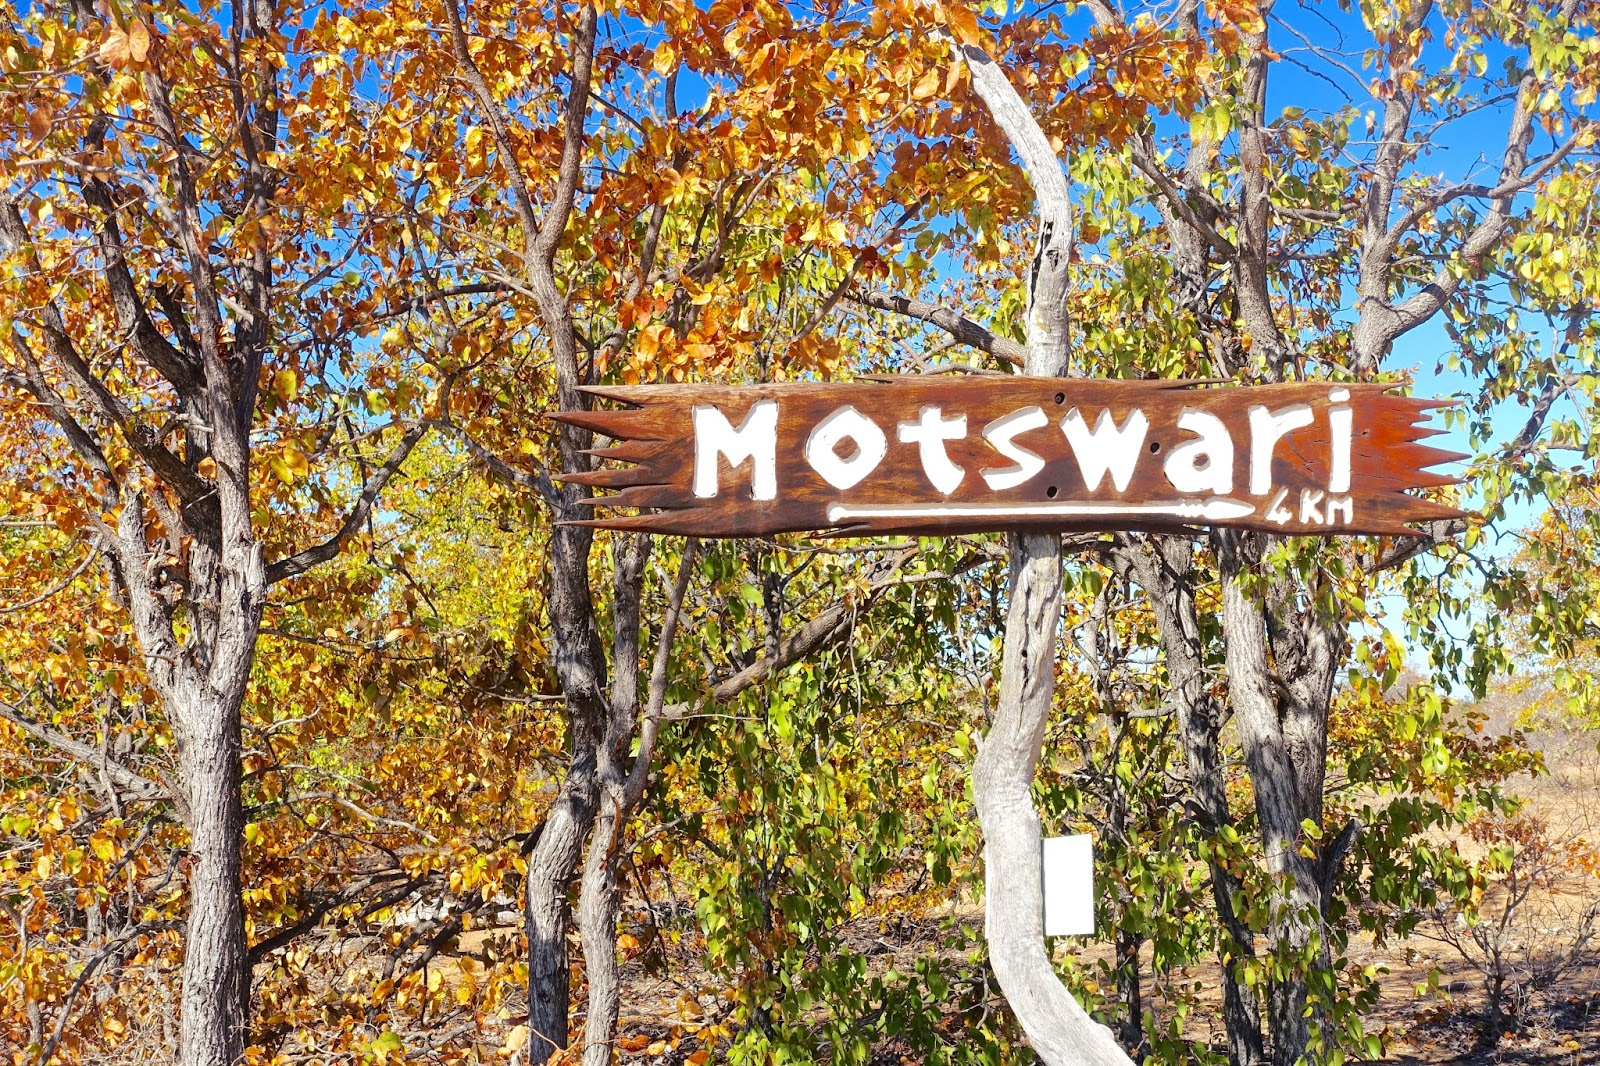 mostwari private game reserve